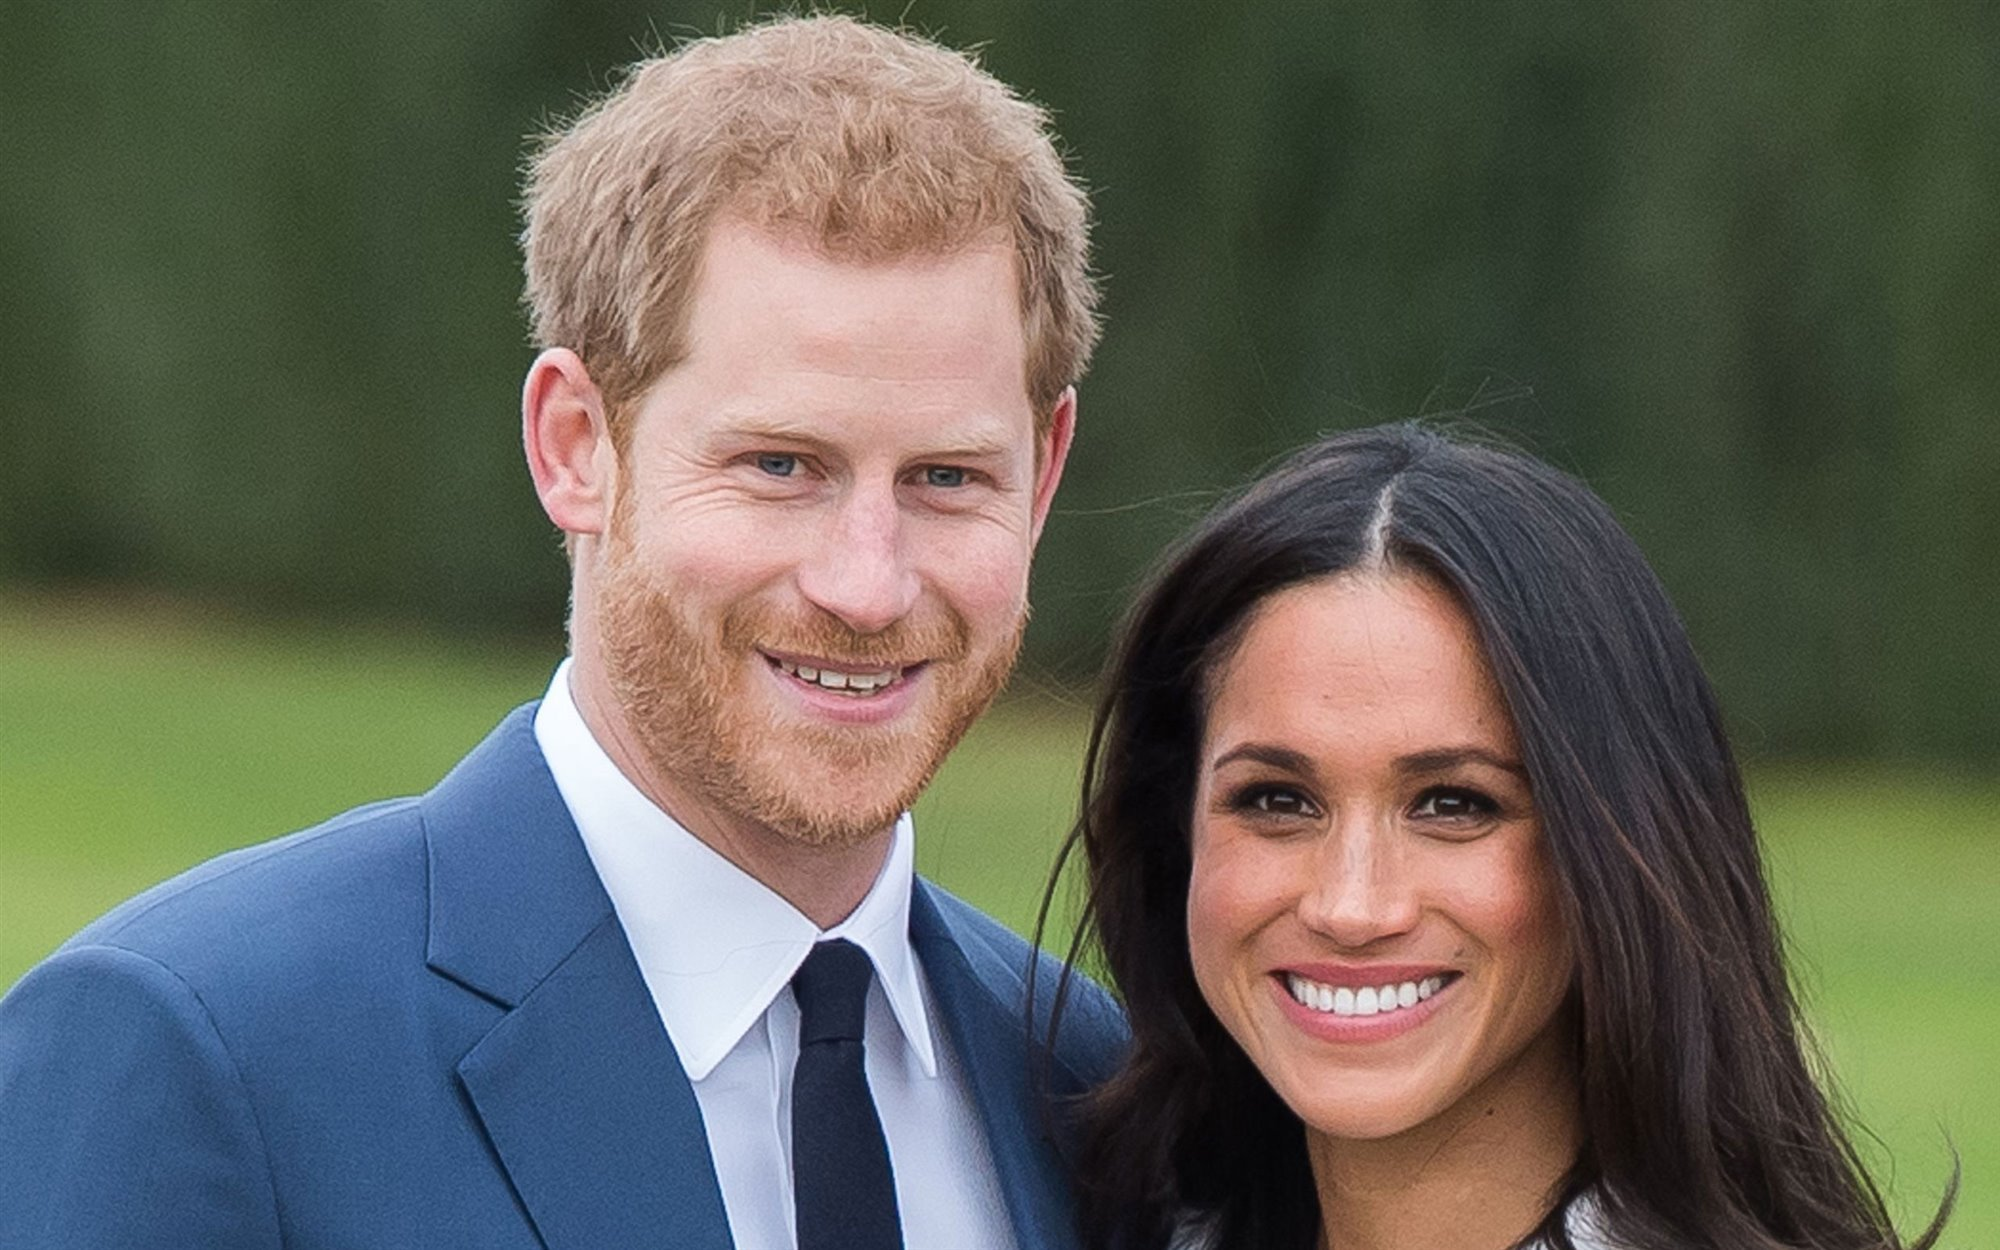 prince-harry-meghan-markle-couple-in-love-portrait. prince-harry-meghan-markle-portrait